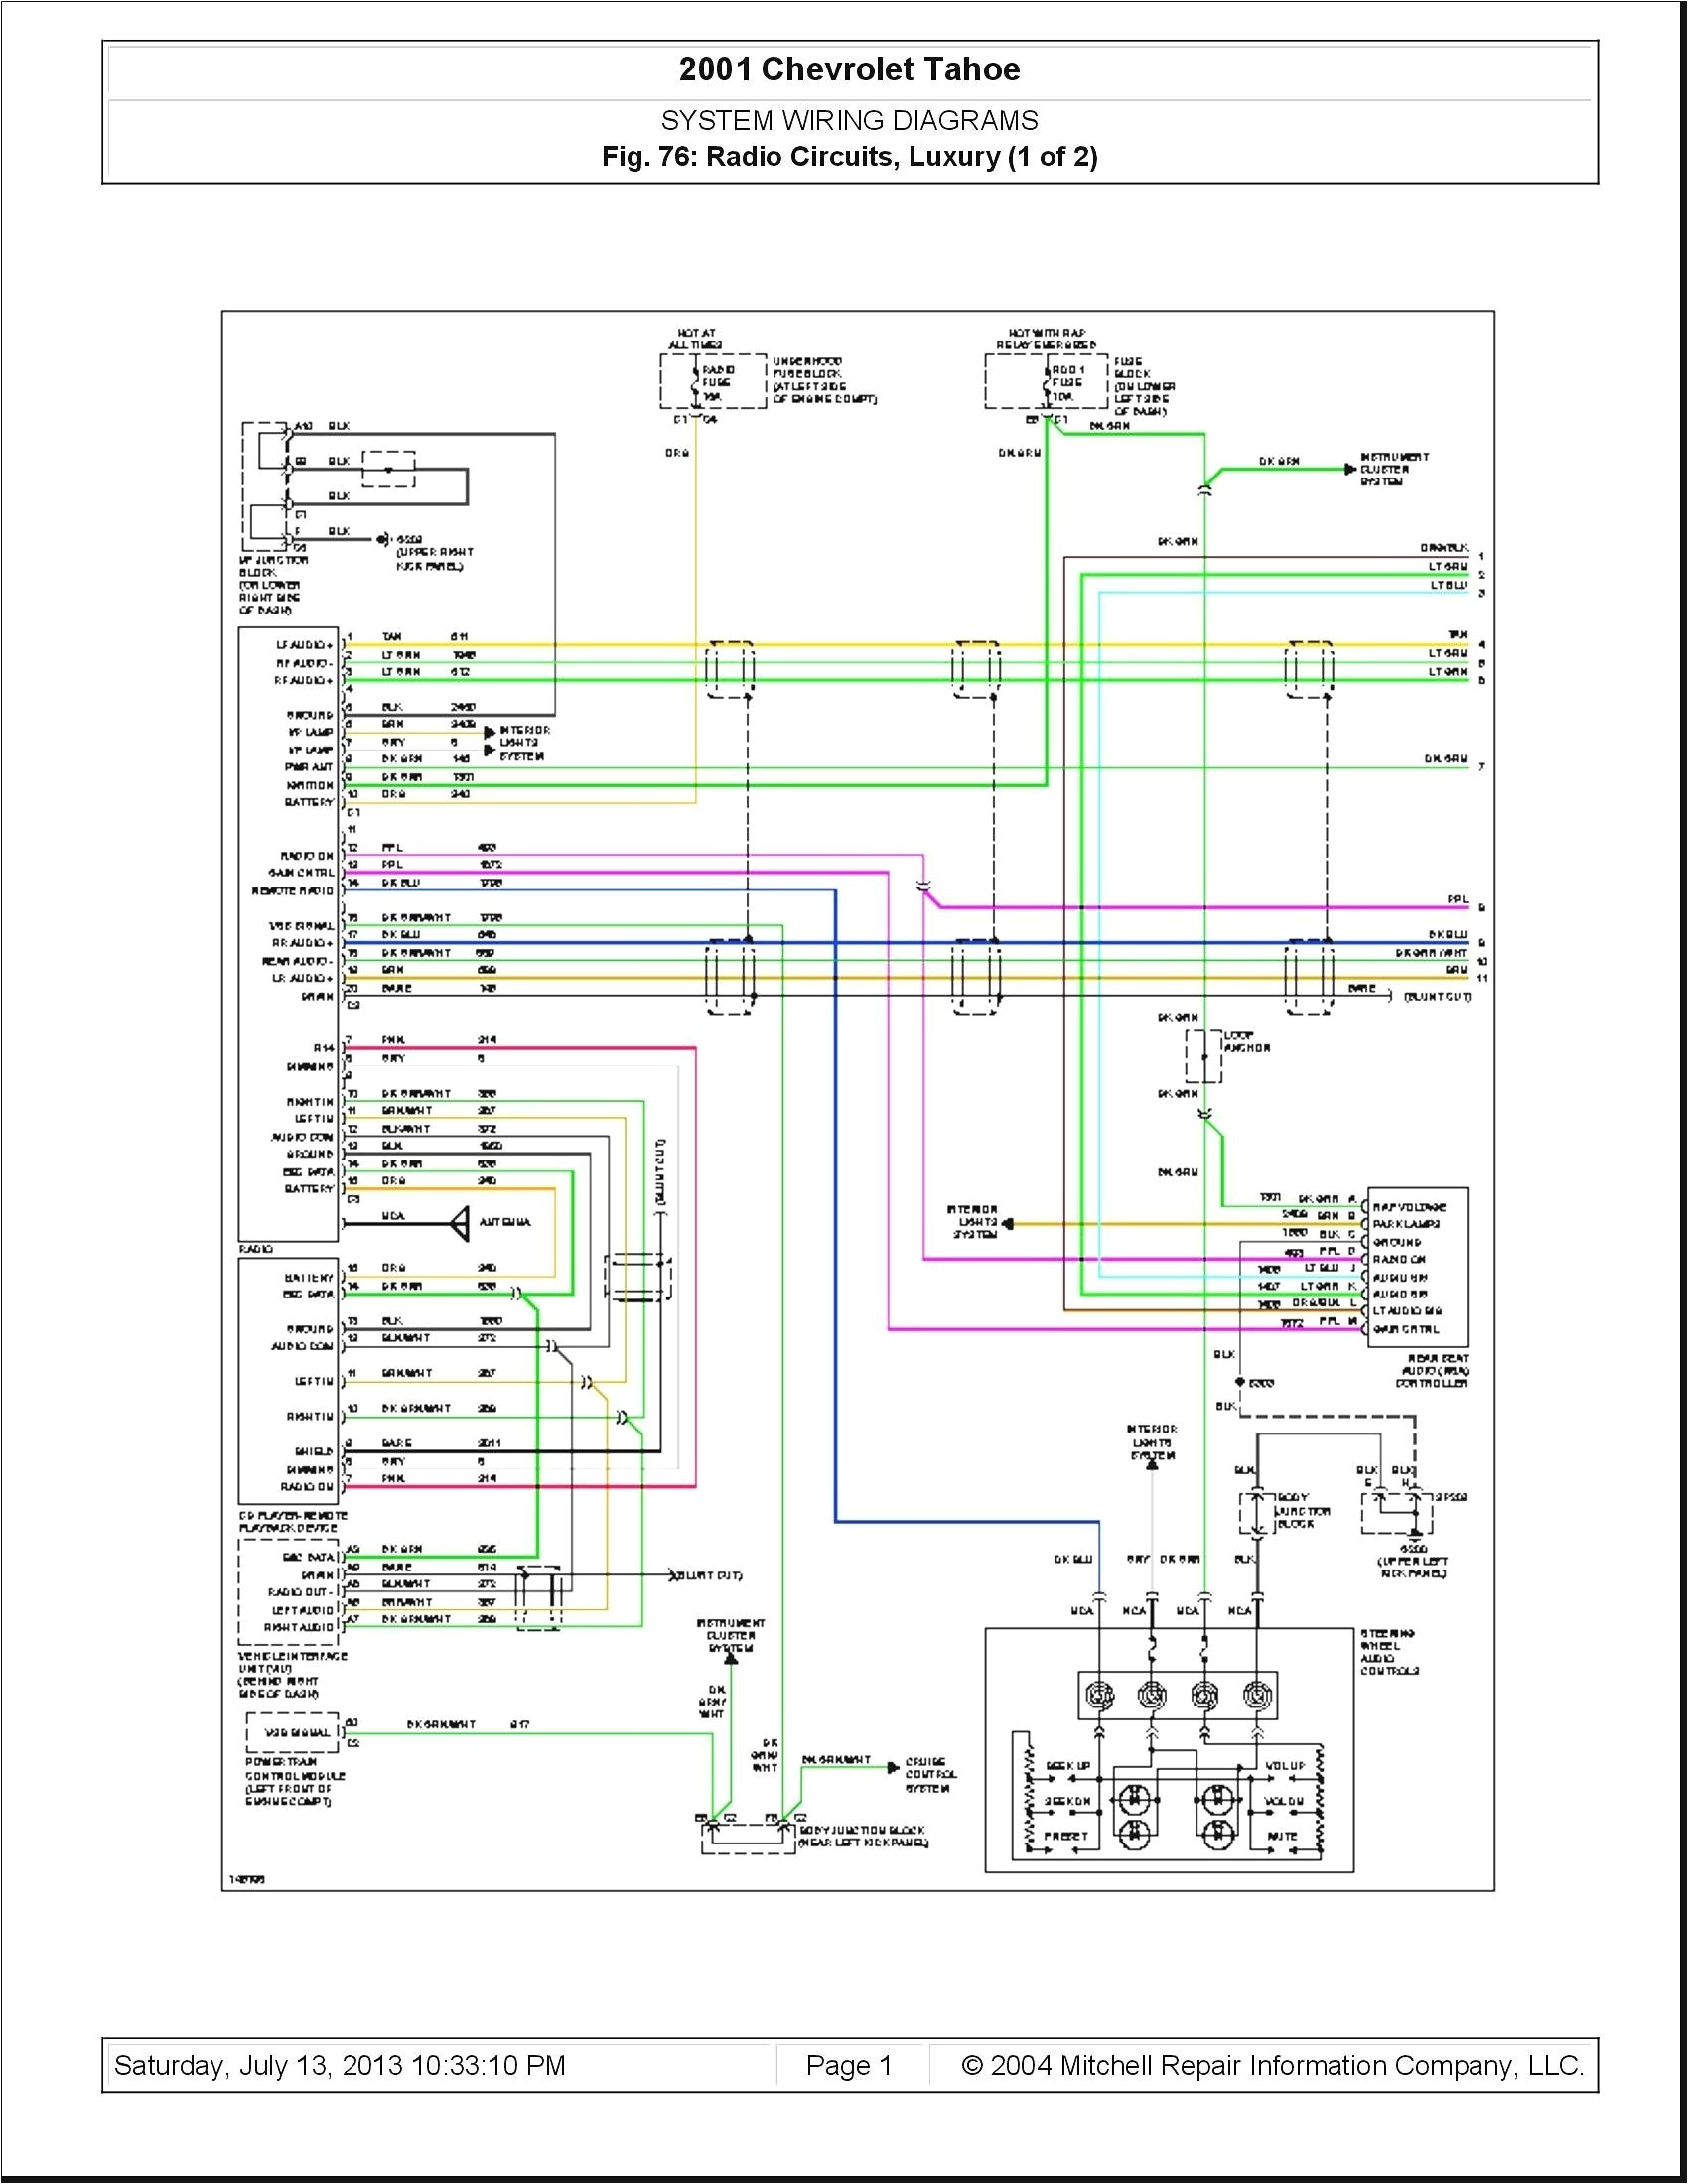 Chevy wiring color codes